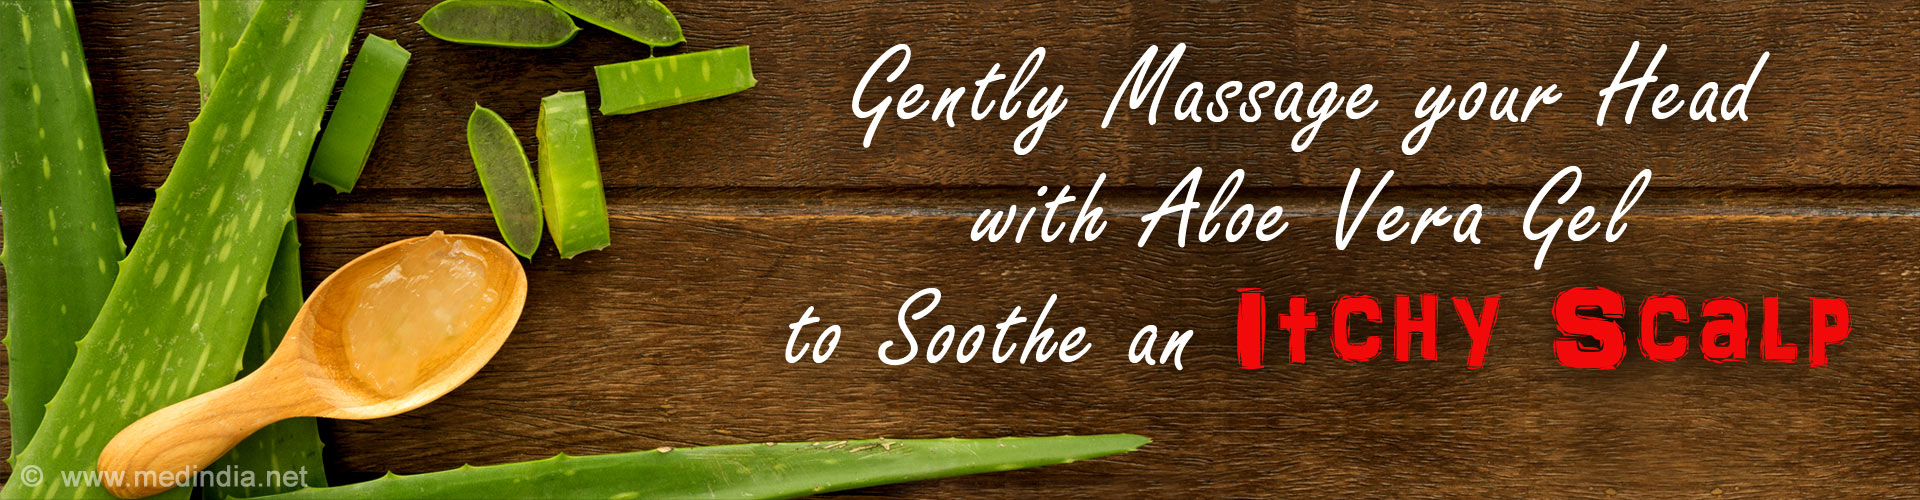 Gently Massage your Head with Aloe Vera Gel to Soothe an Itchy Scalp